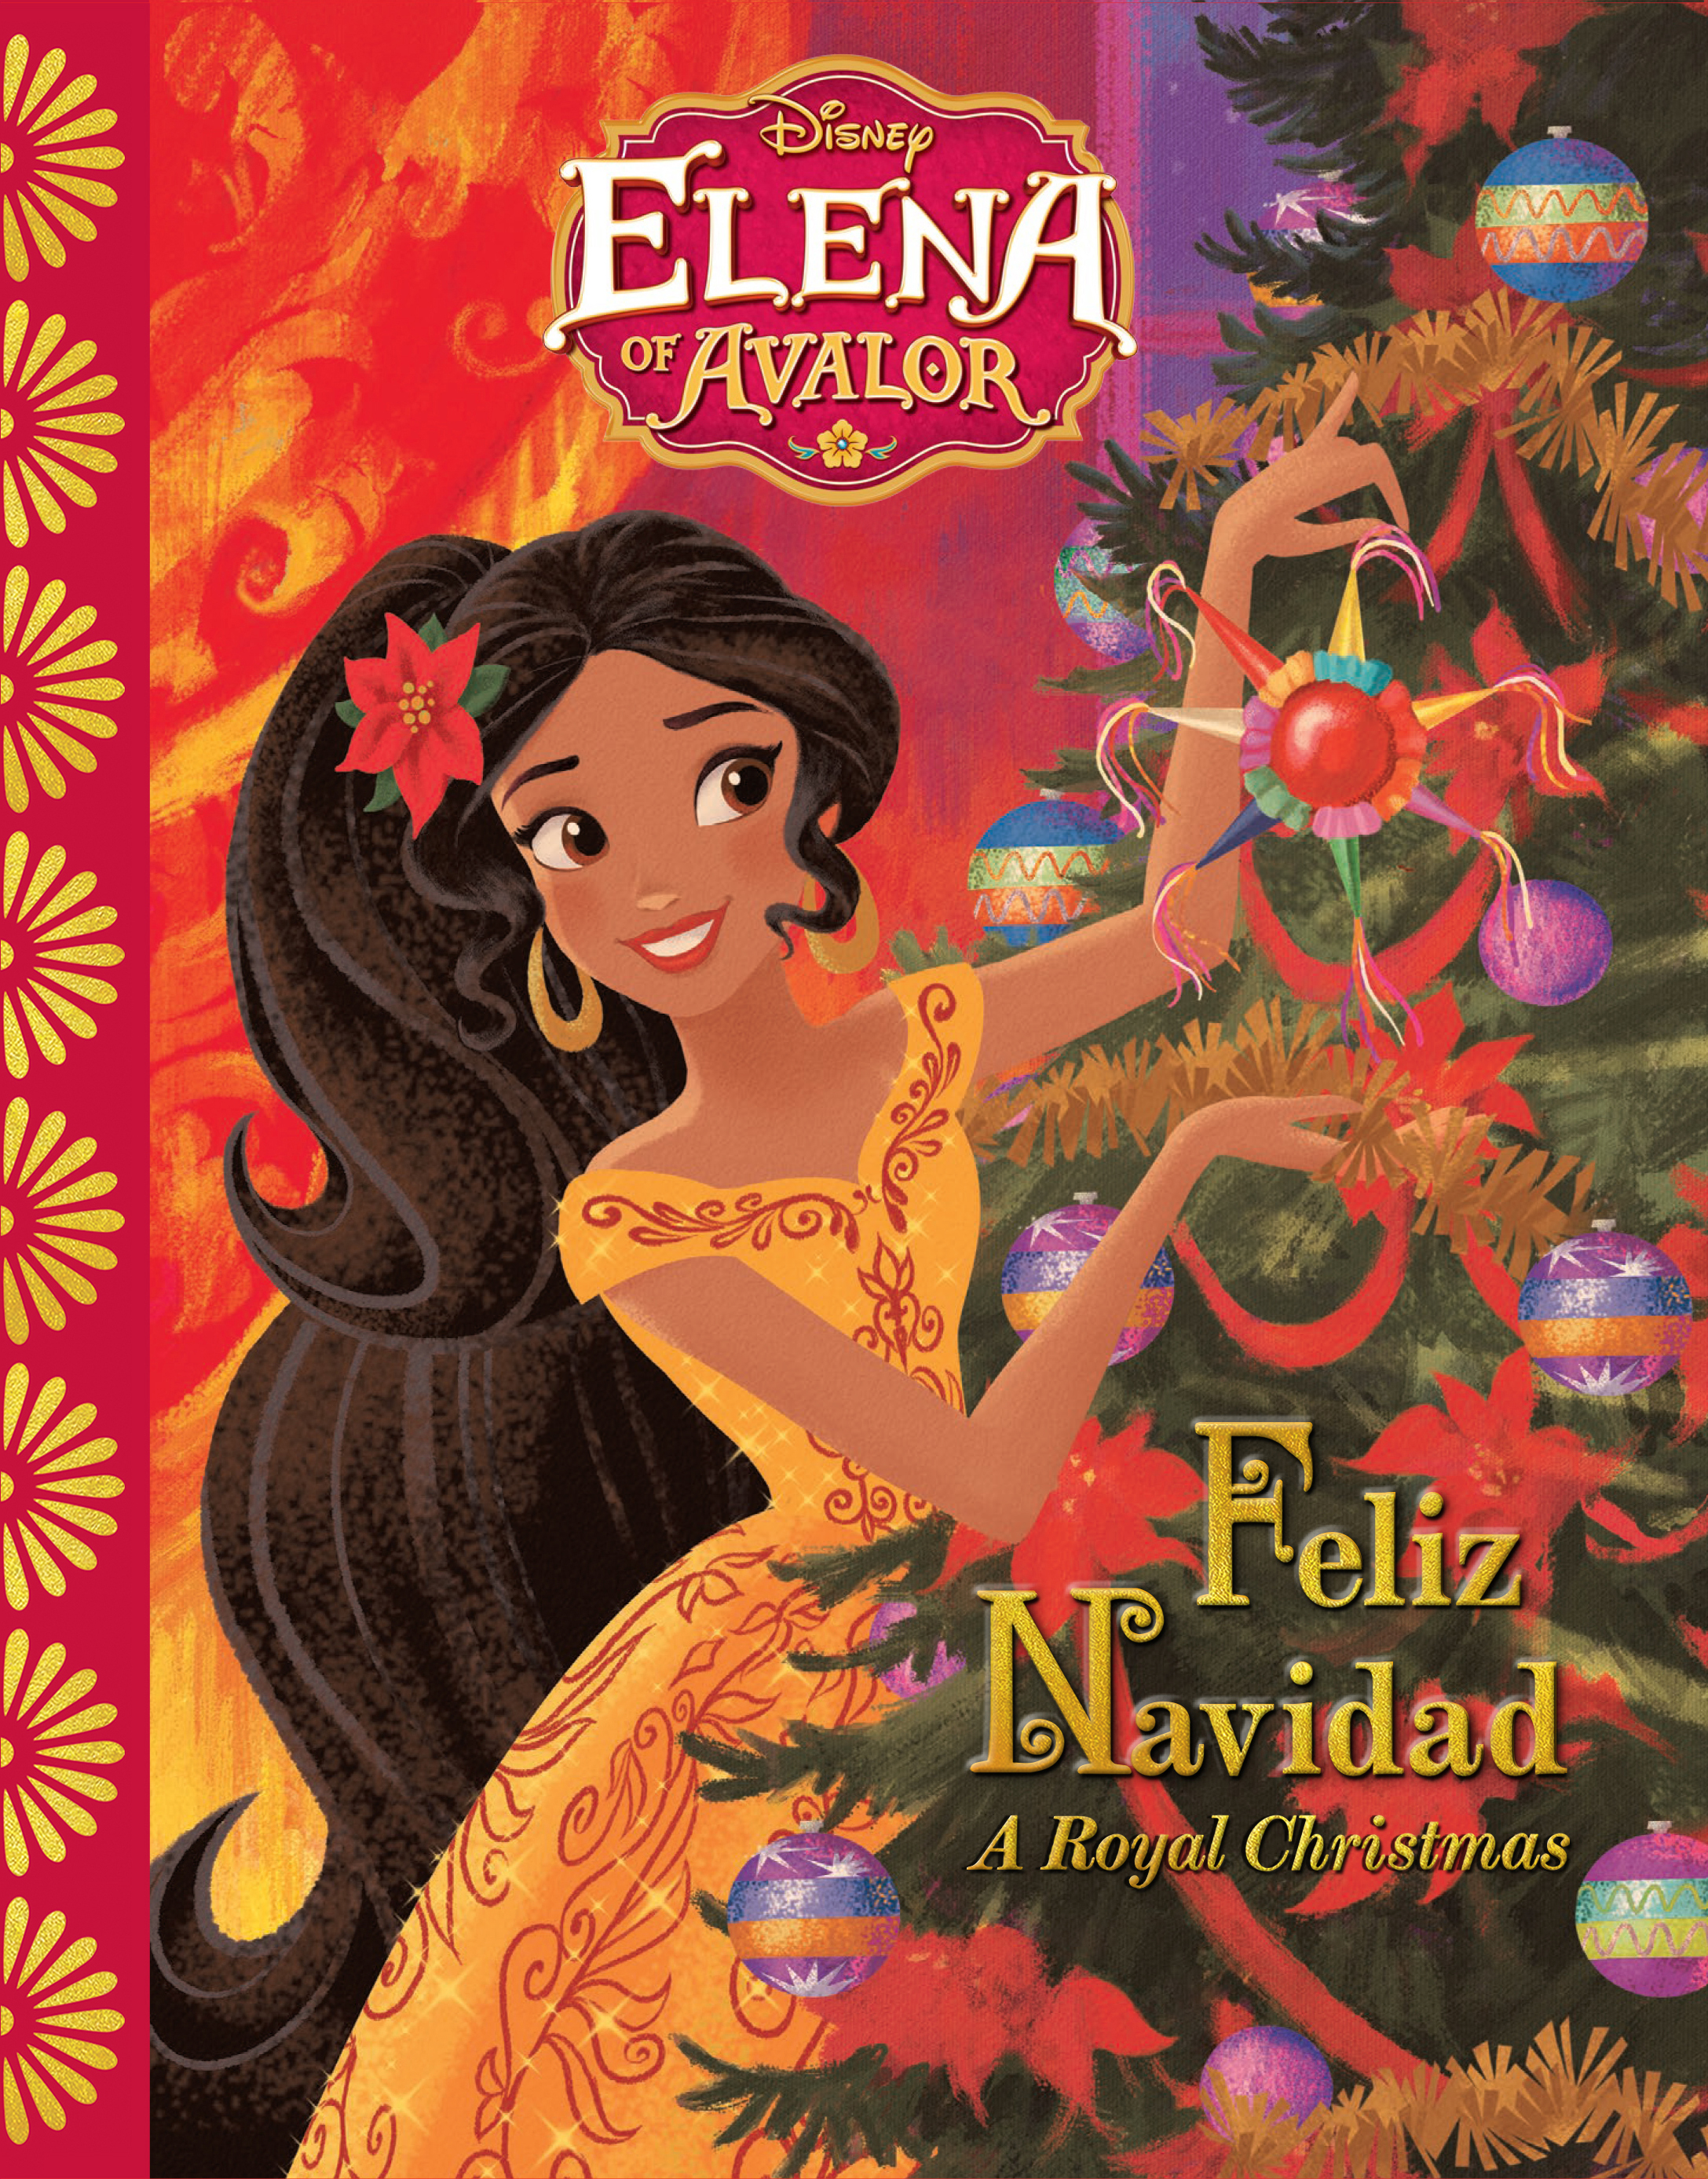 Be holiday ready with Elena: Gift ideas fit for a princess - Prize Pack Giveaway!